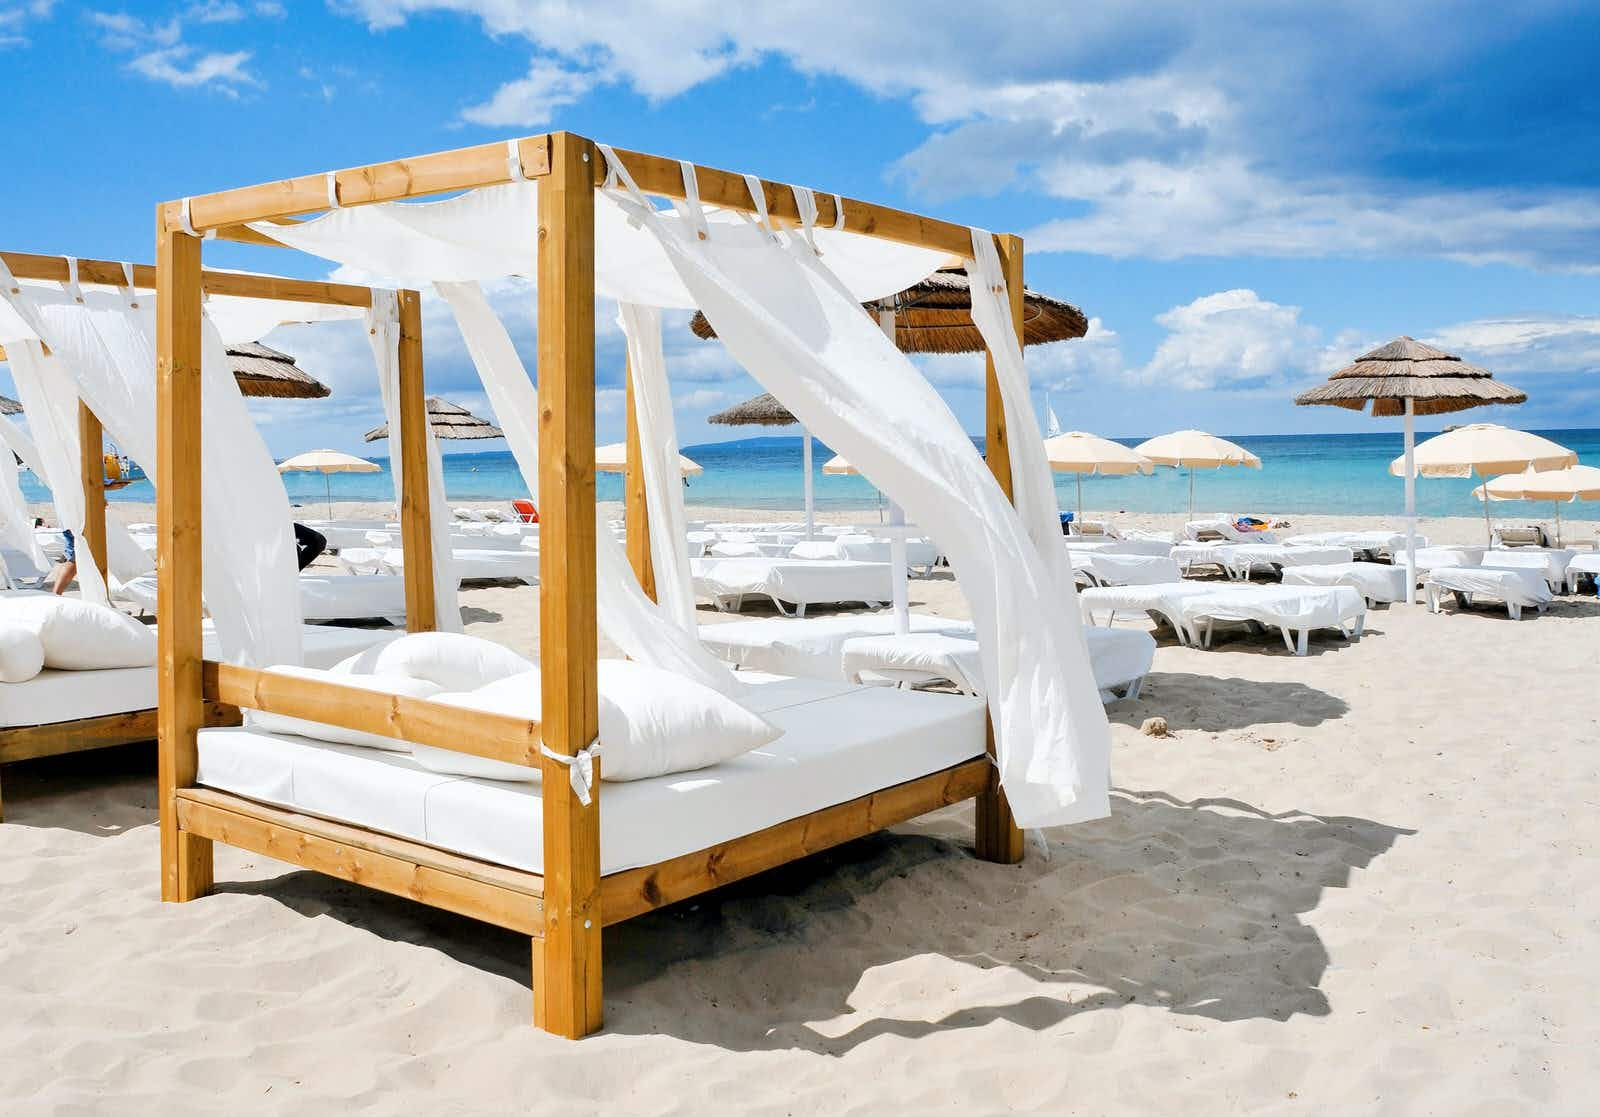 Wish you were here? Book a spa break in Ibiza and make it a reality © nito/Shutterstock